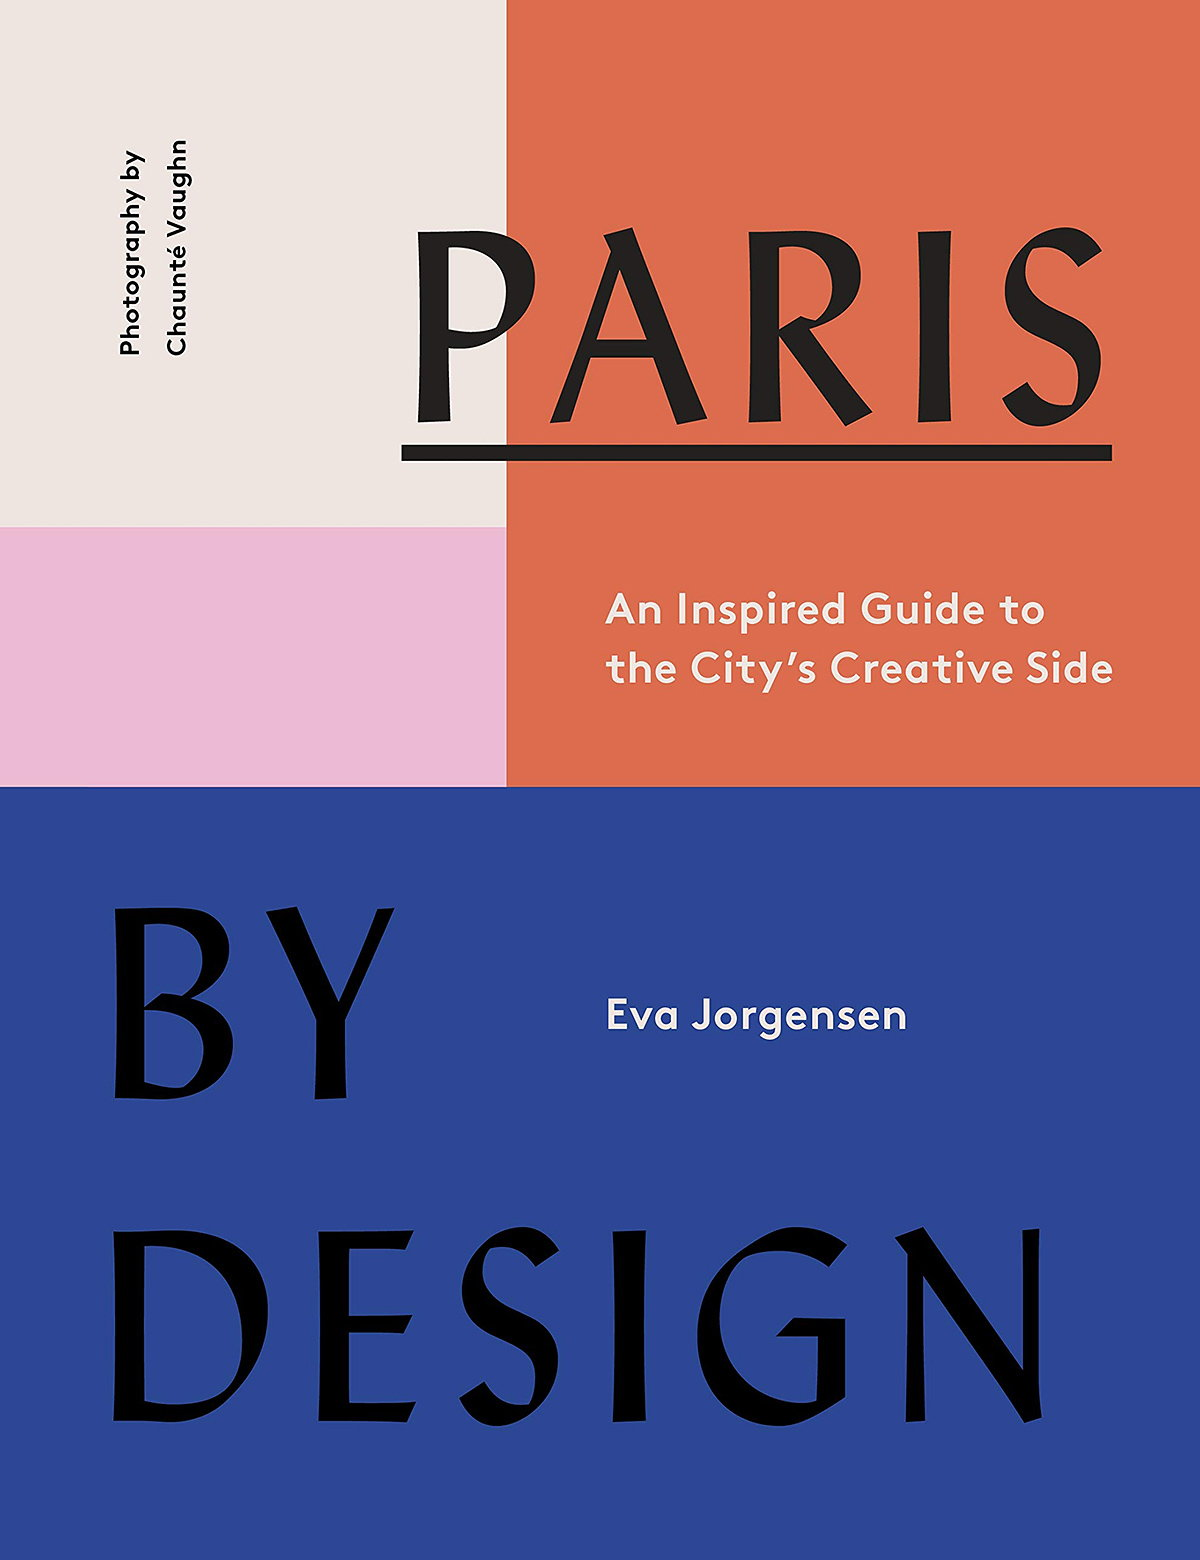 Paris by Design - An Inspired Guide to the City's Creative Side